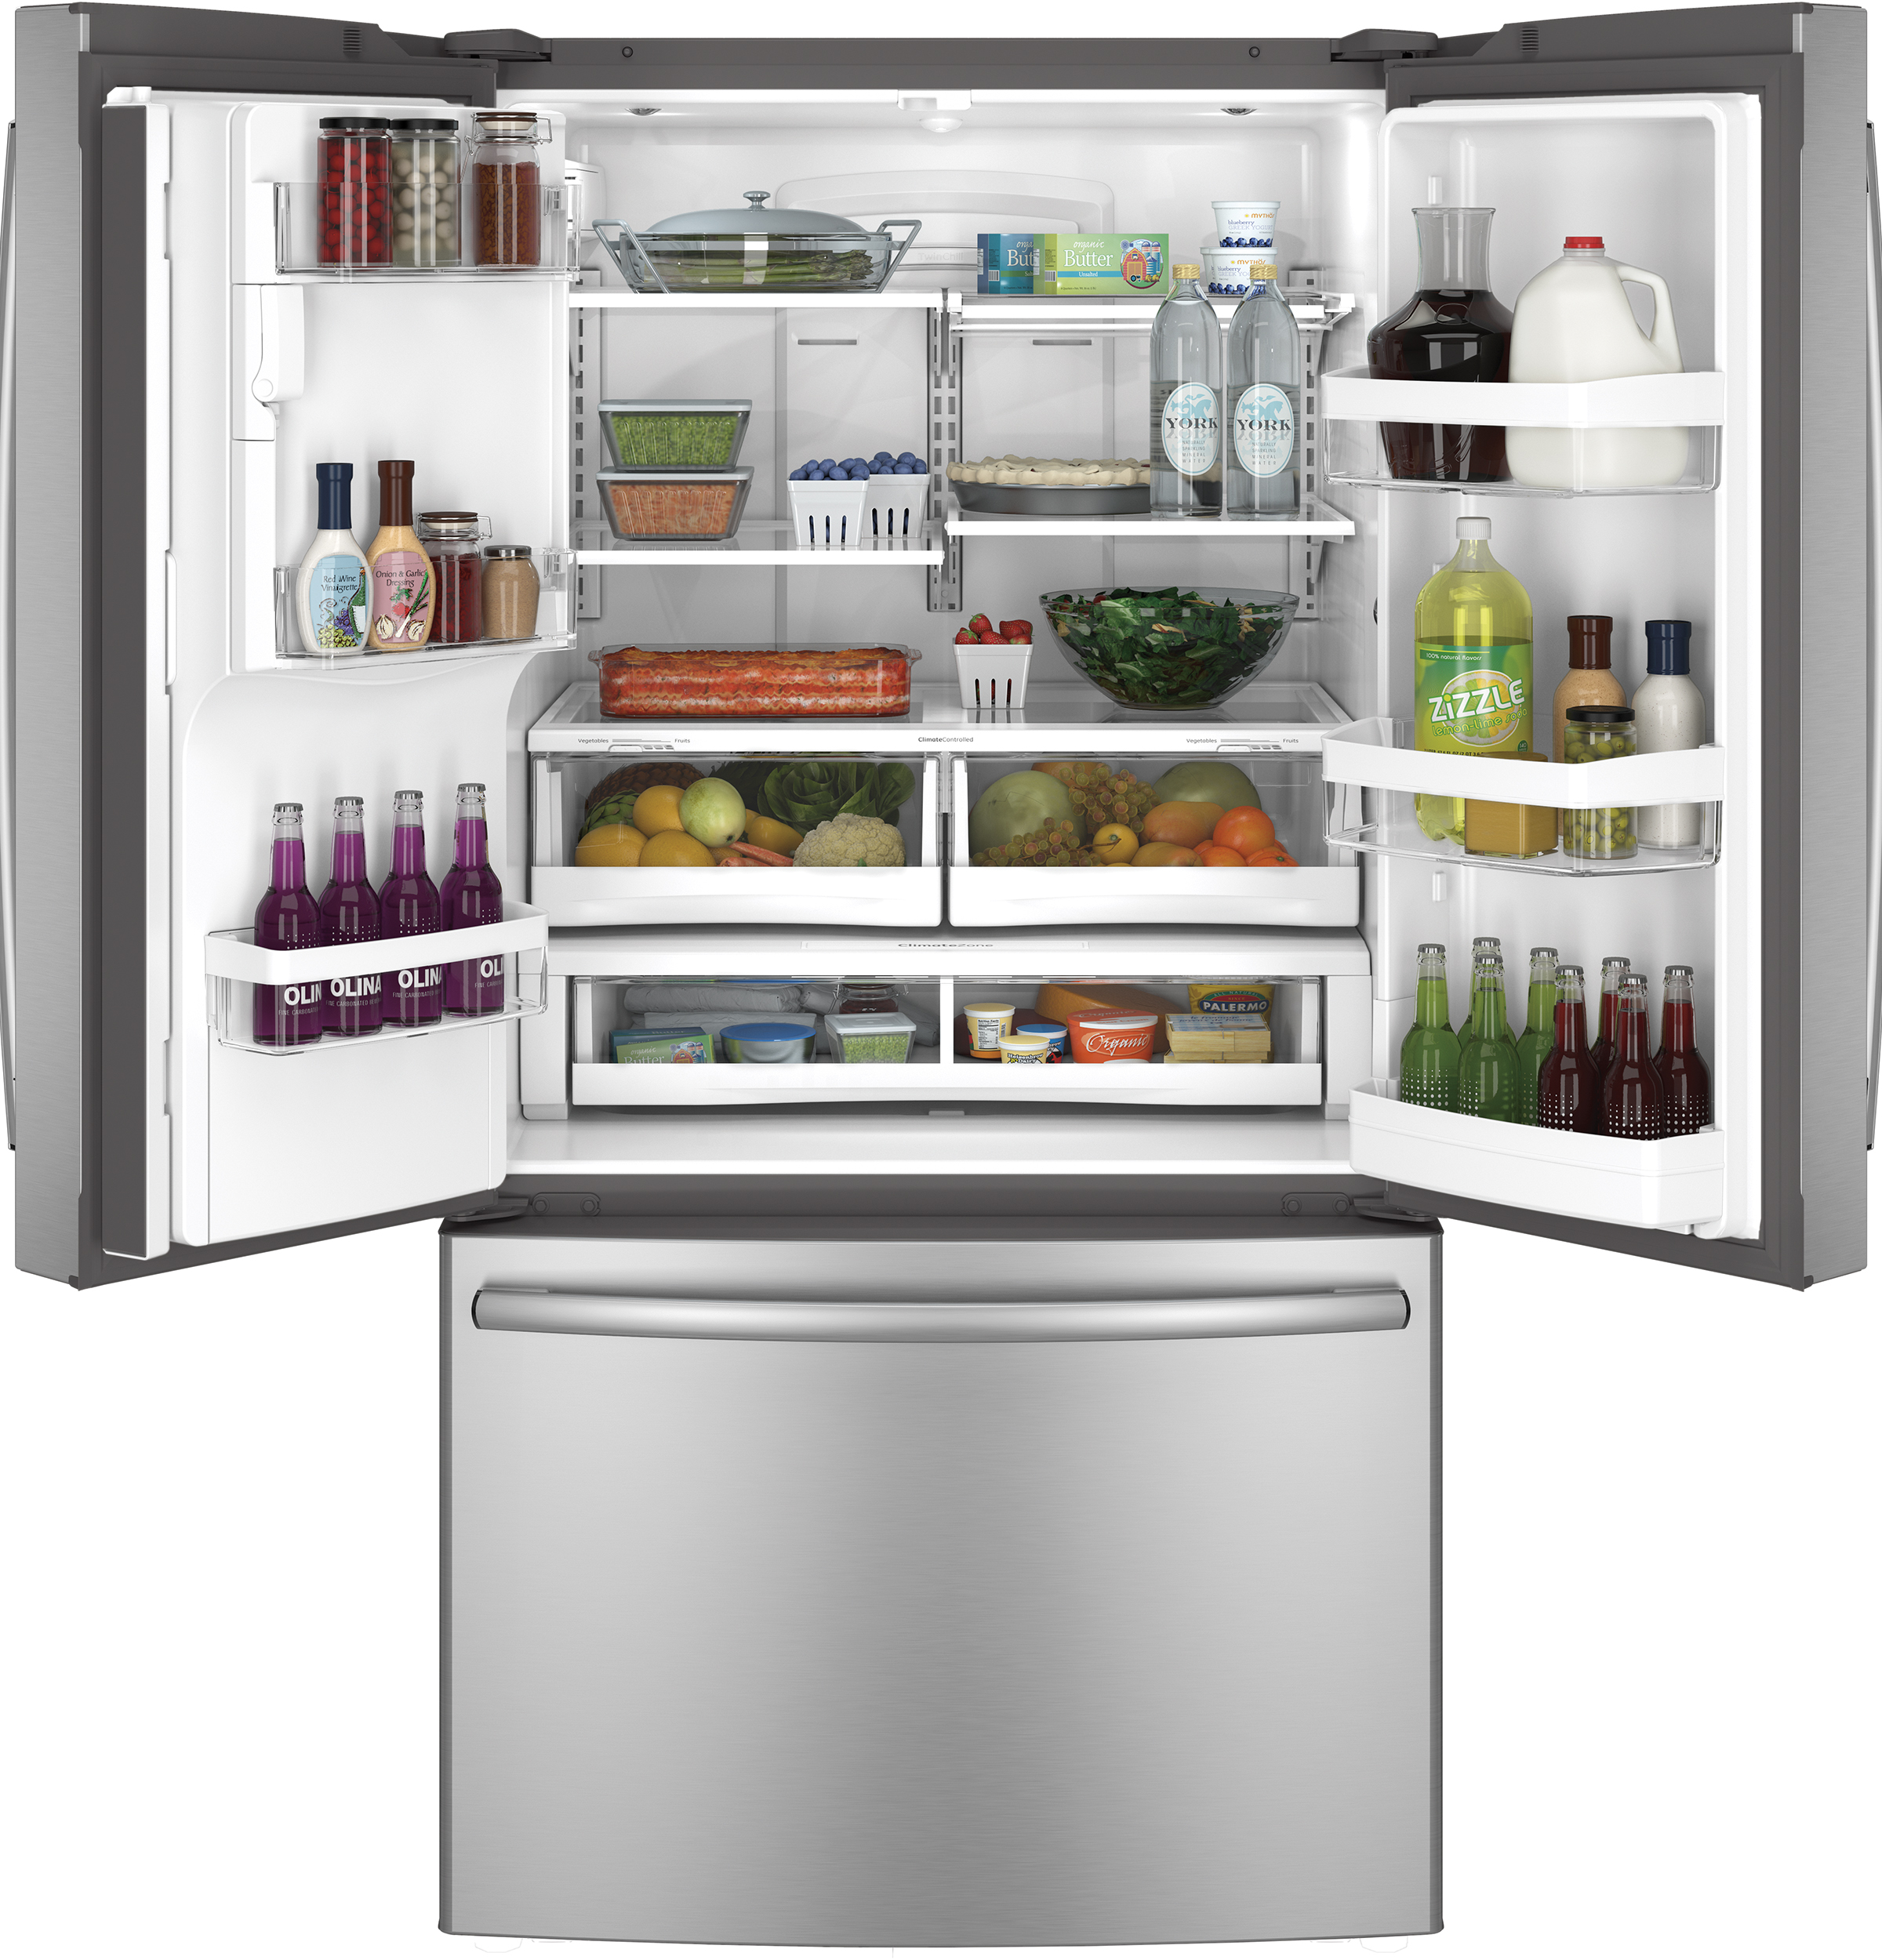 GE Appliances GFE28HSHSS 27.7 cu. ft. French-Door Ice and Water Refrigerator - Stainless Steel